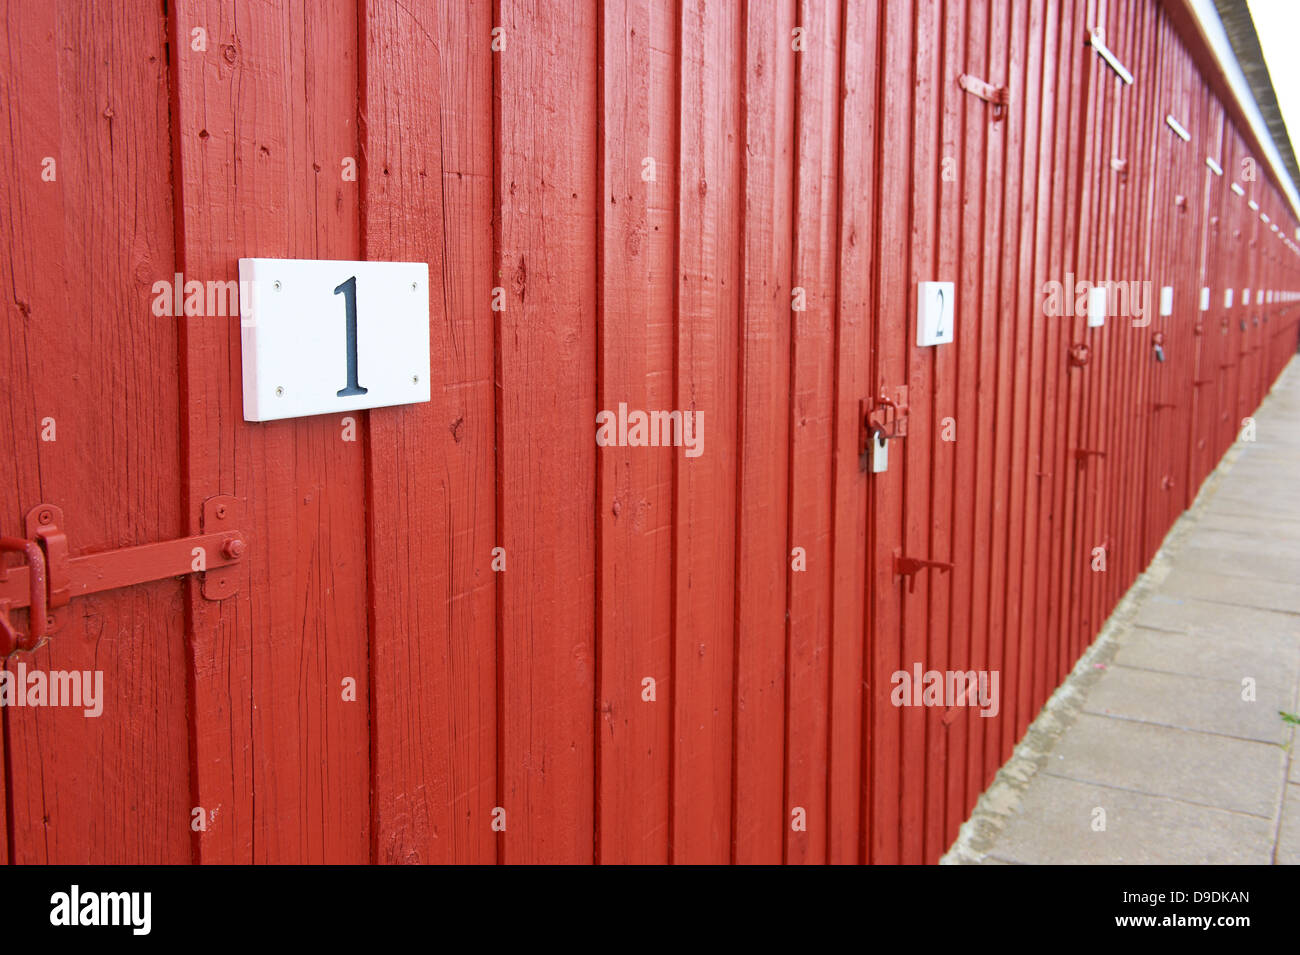 Red doors witn number signs - Stock Image